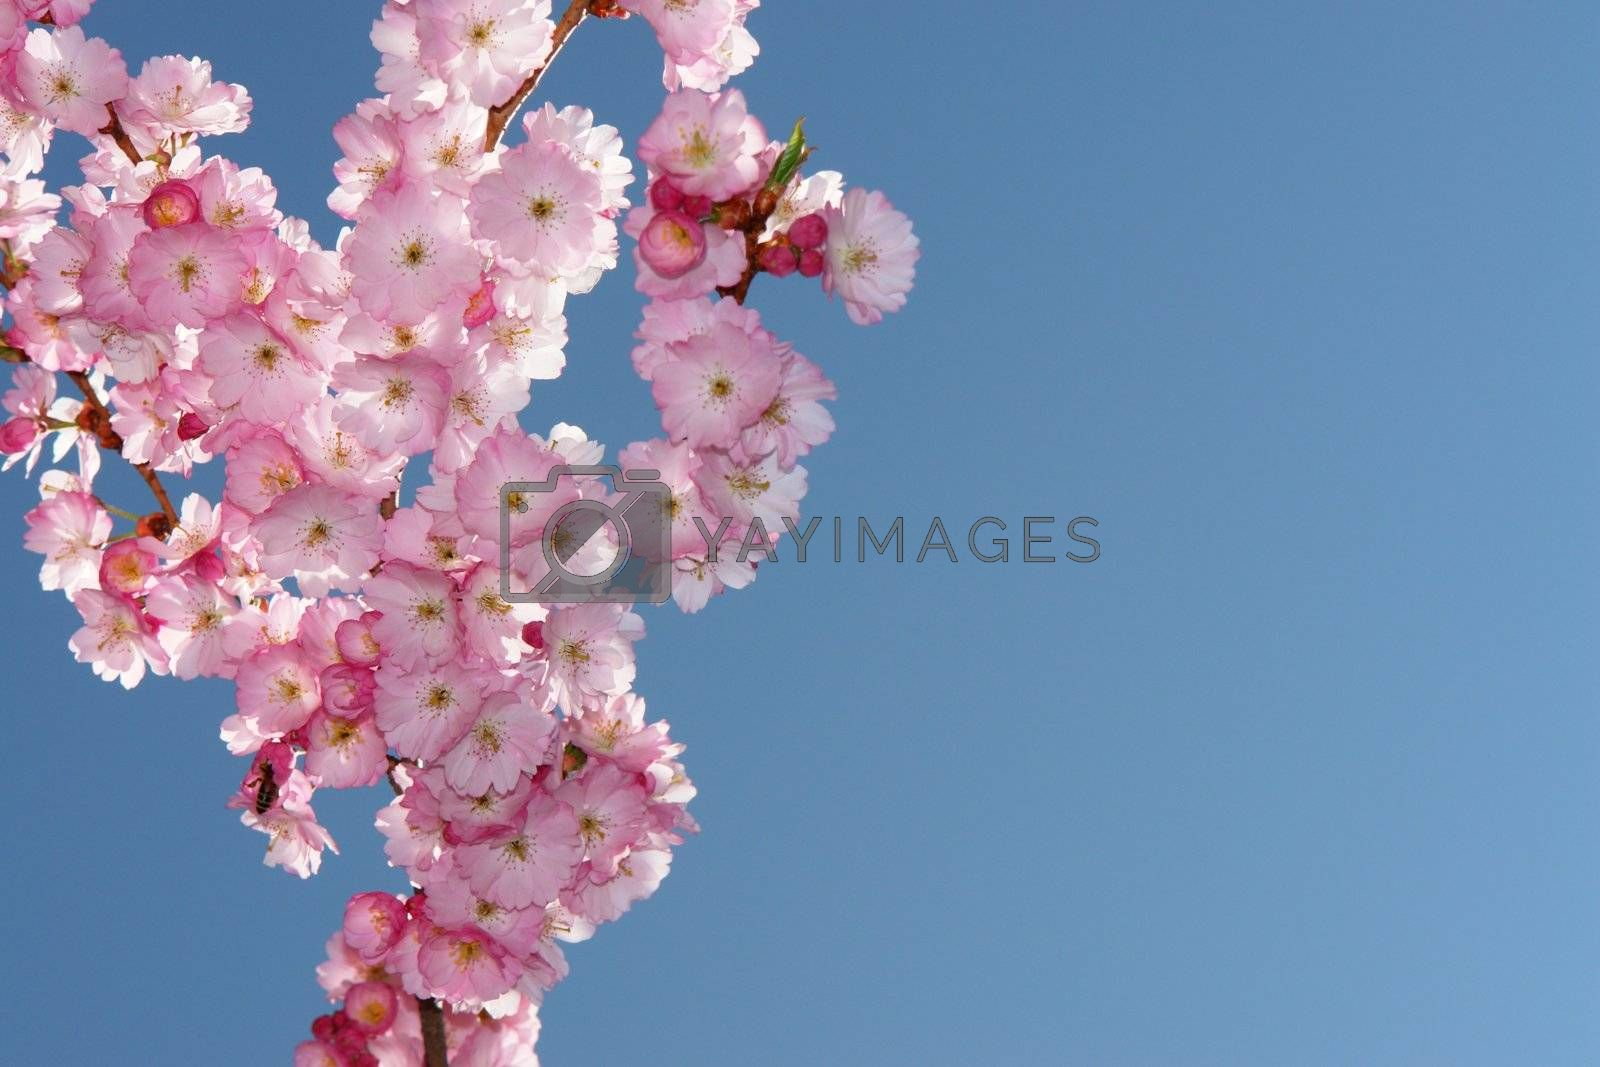 Royalty free image of pinktree by yucas